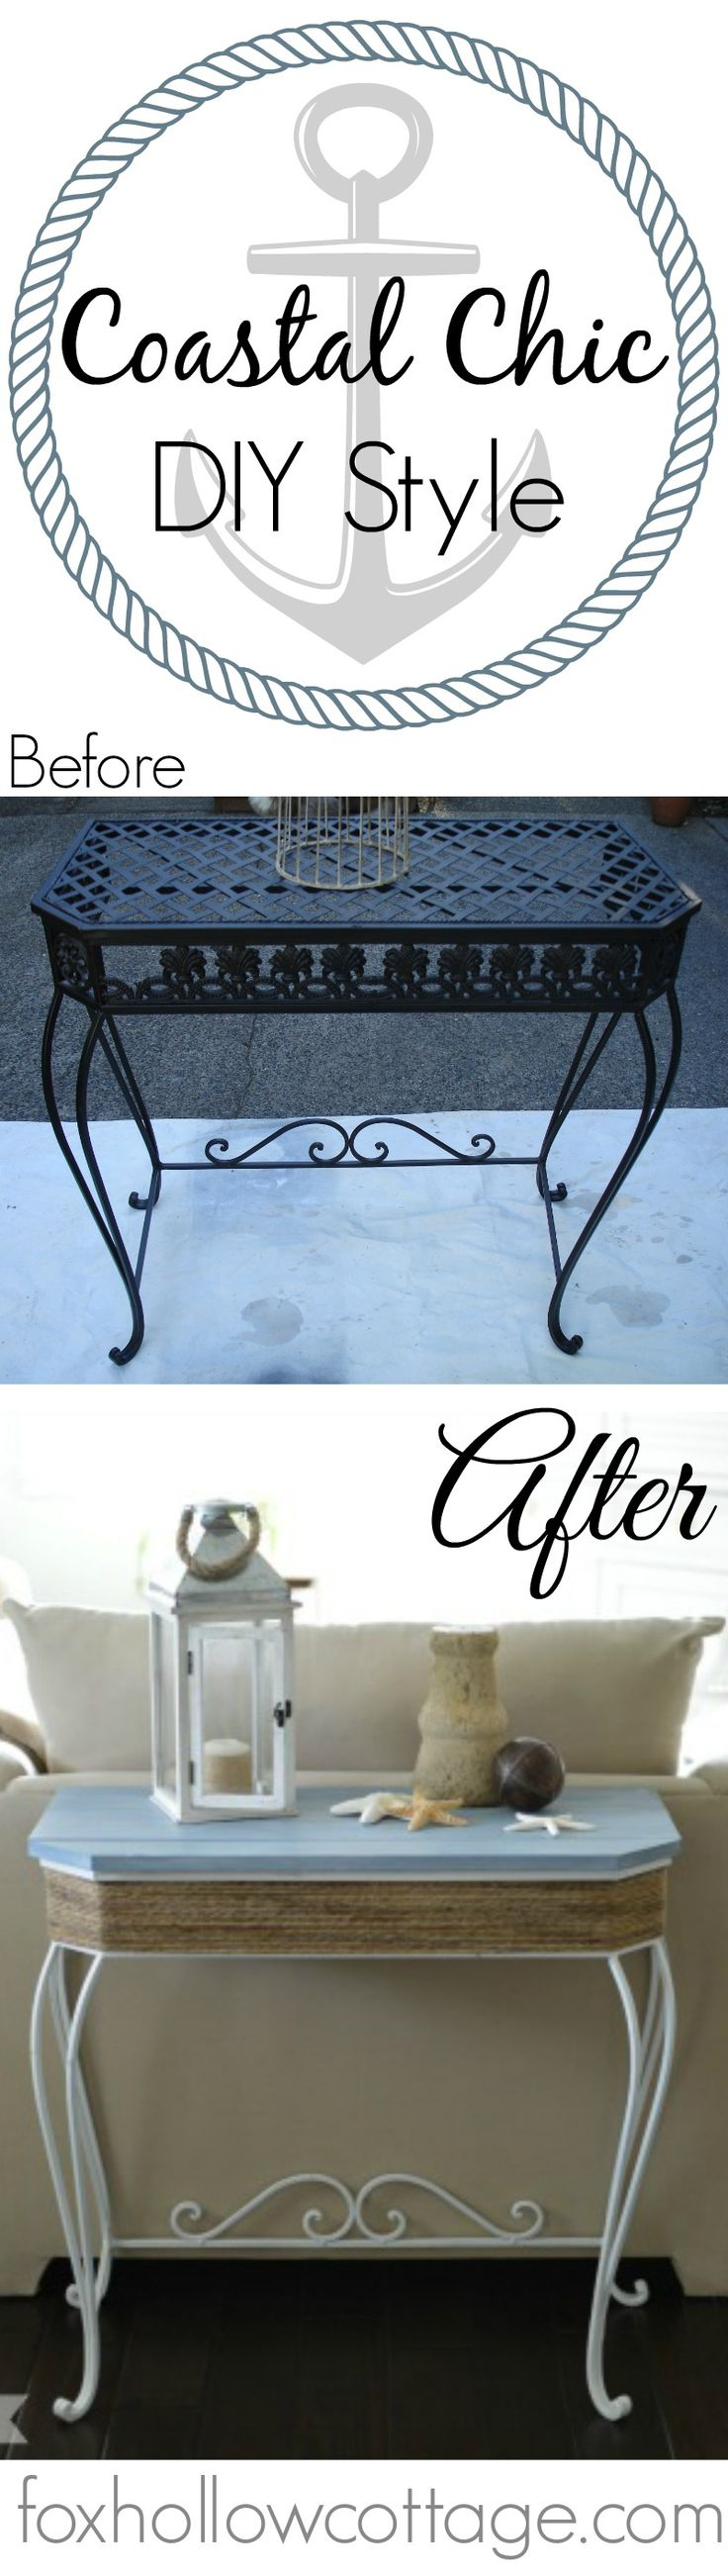 Coastal Beach Theme Painted Furniture | Before and After DIY Tutorial